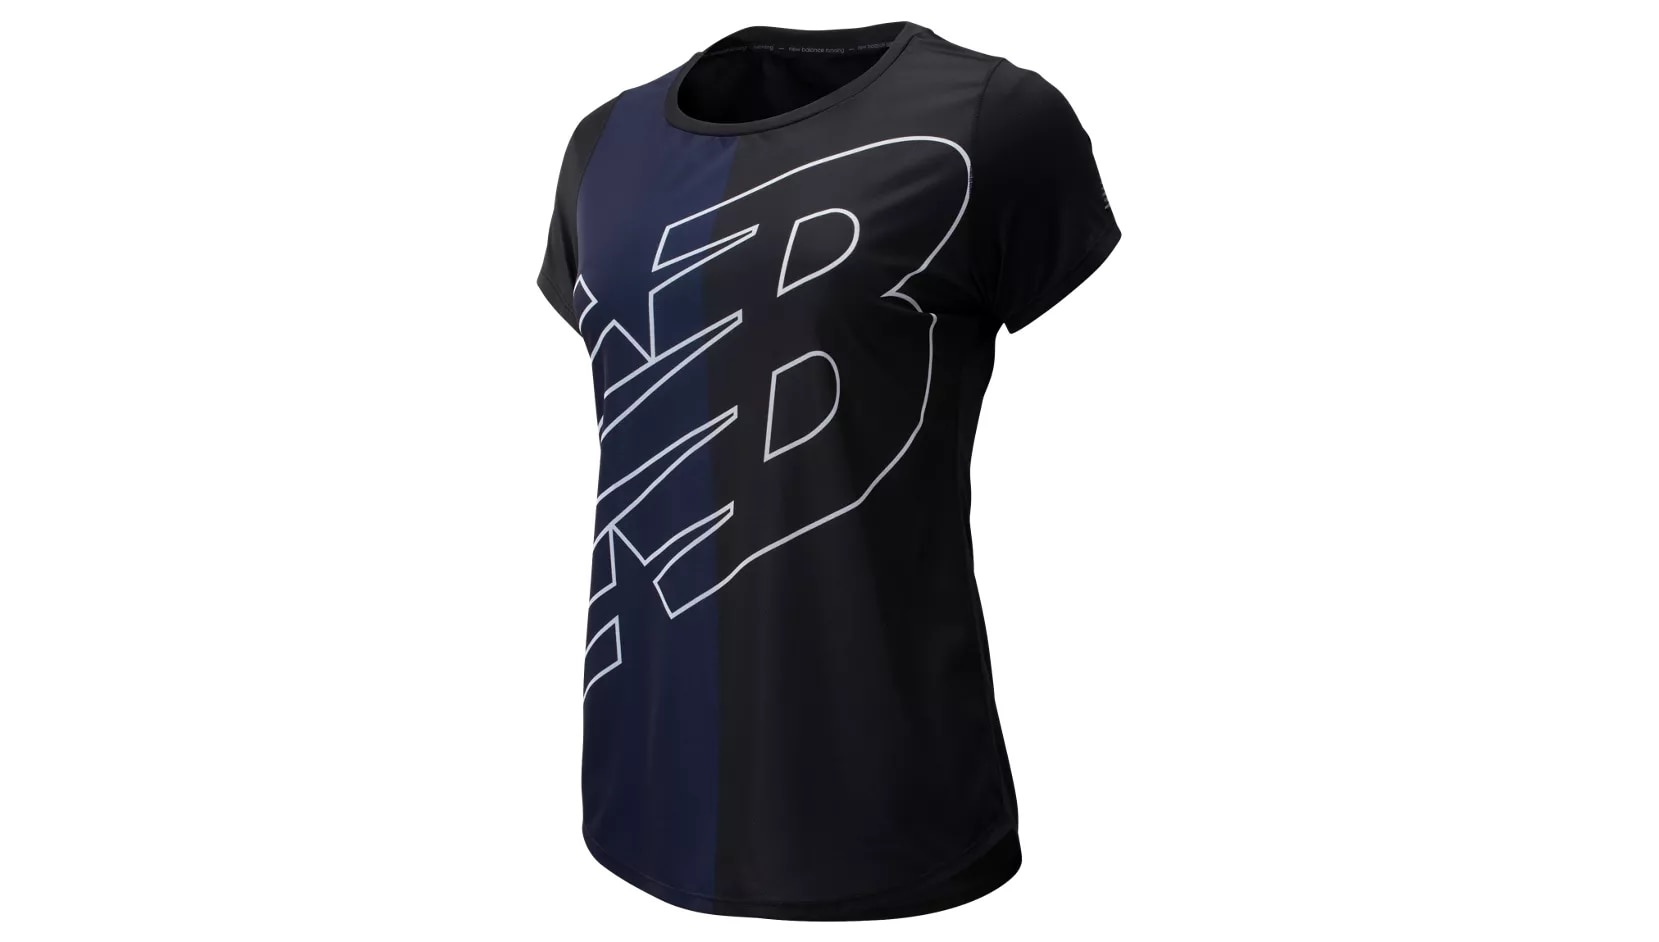 adafc581 Buy NB Printed Accelerate Shortsleeve for Women   The Sports Room